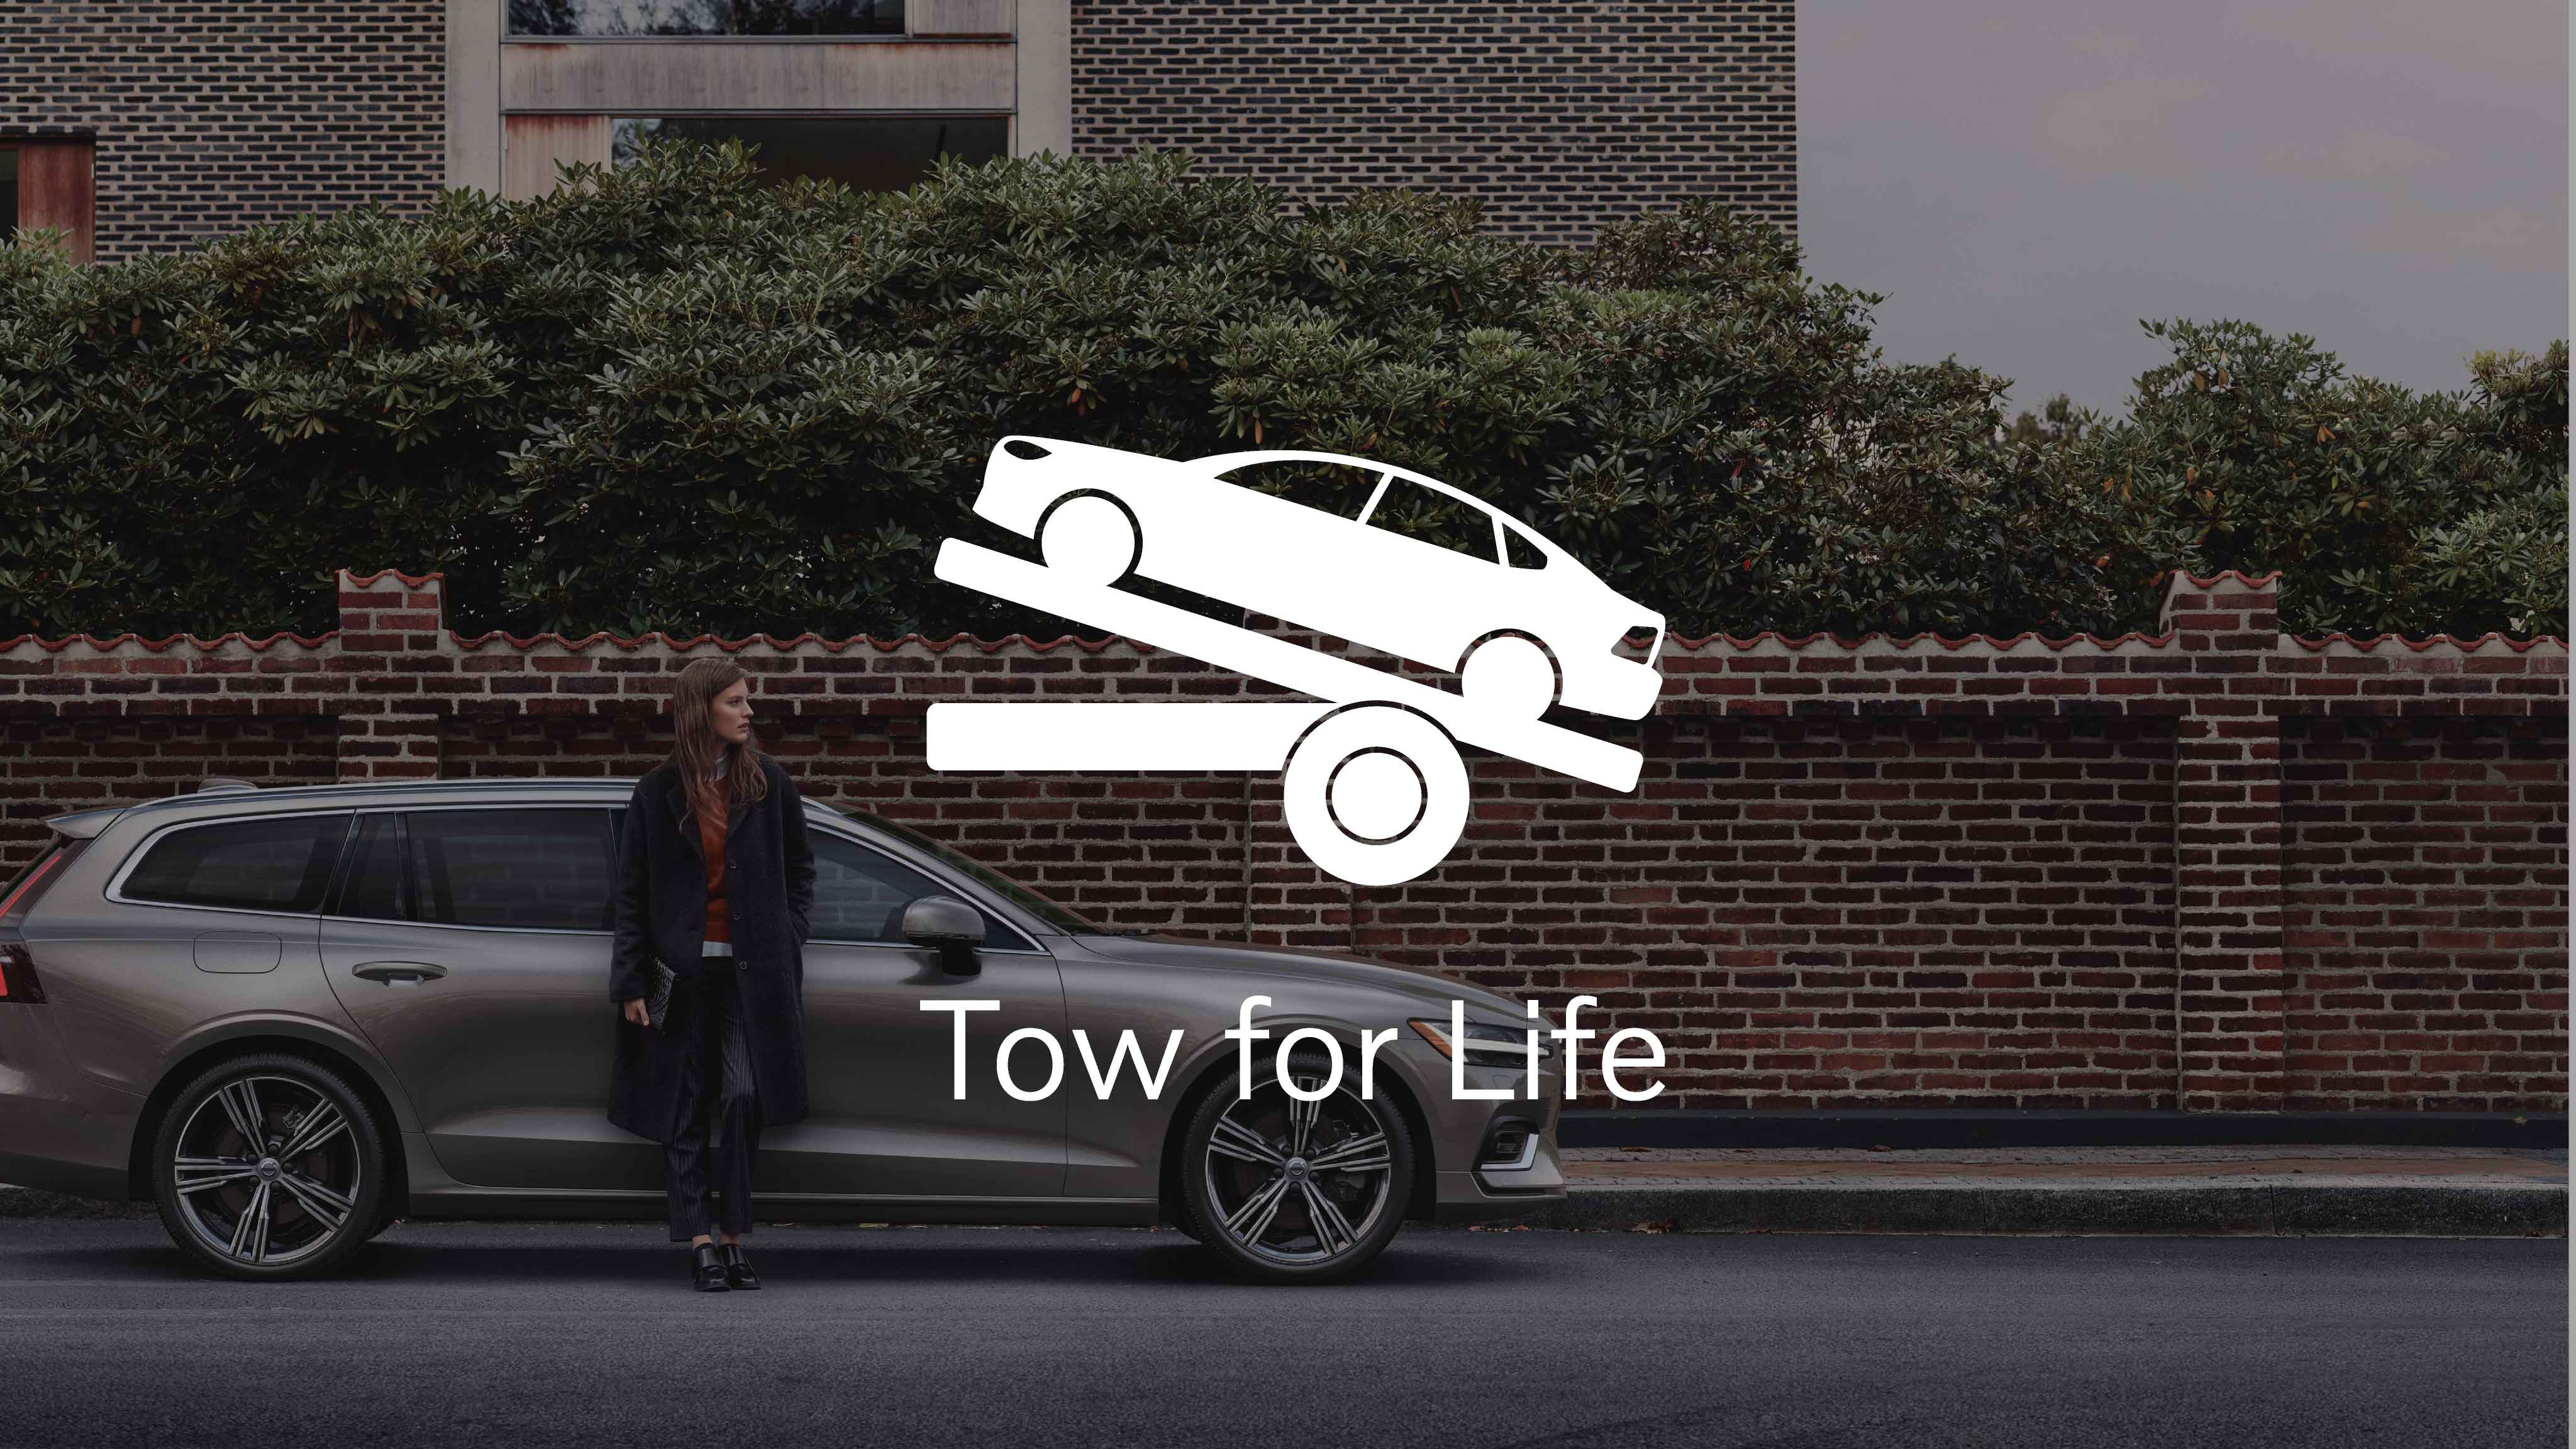 Culver City Volvo Cars offers the Volvo Tow for Life Program